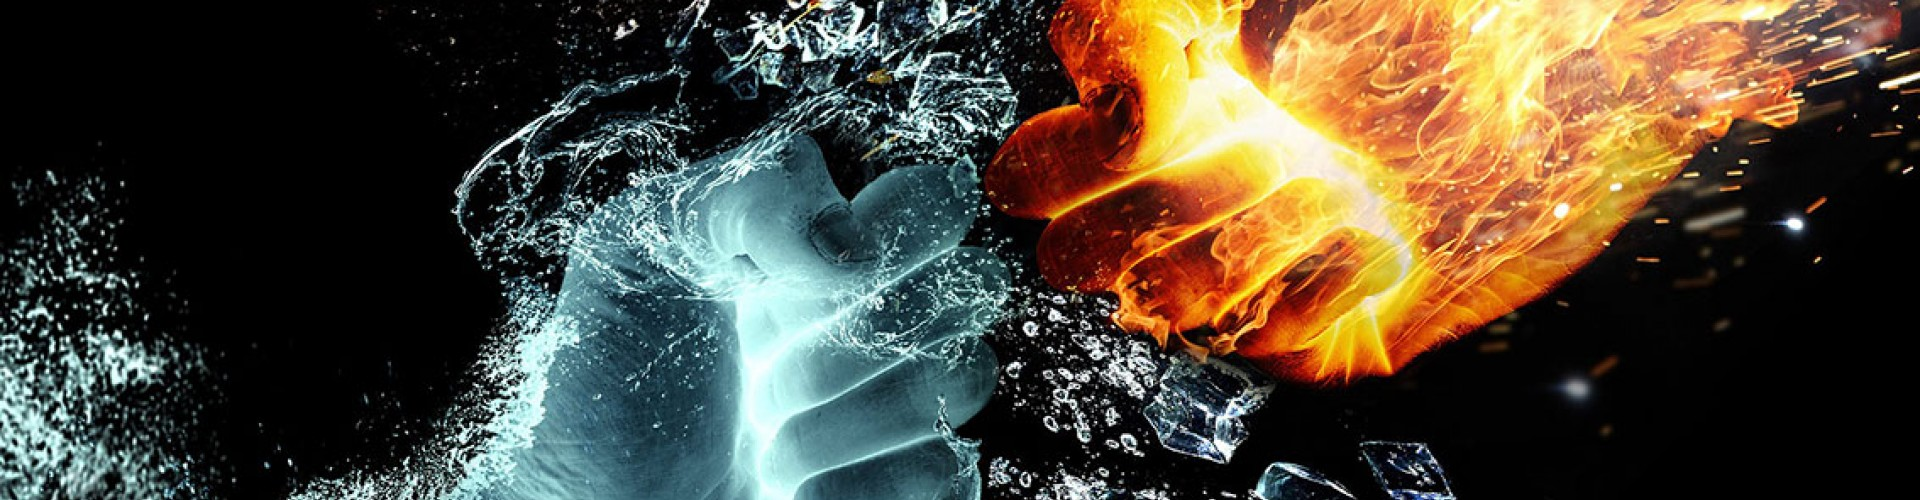 fire and water fists battle|